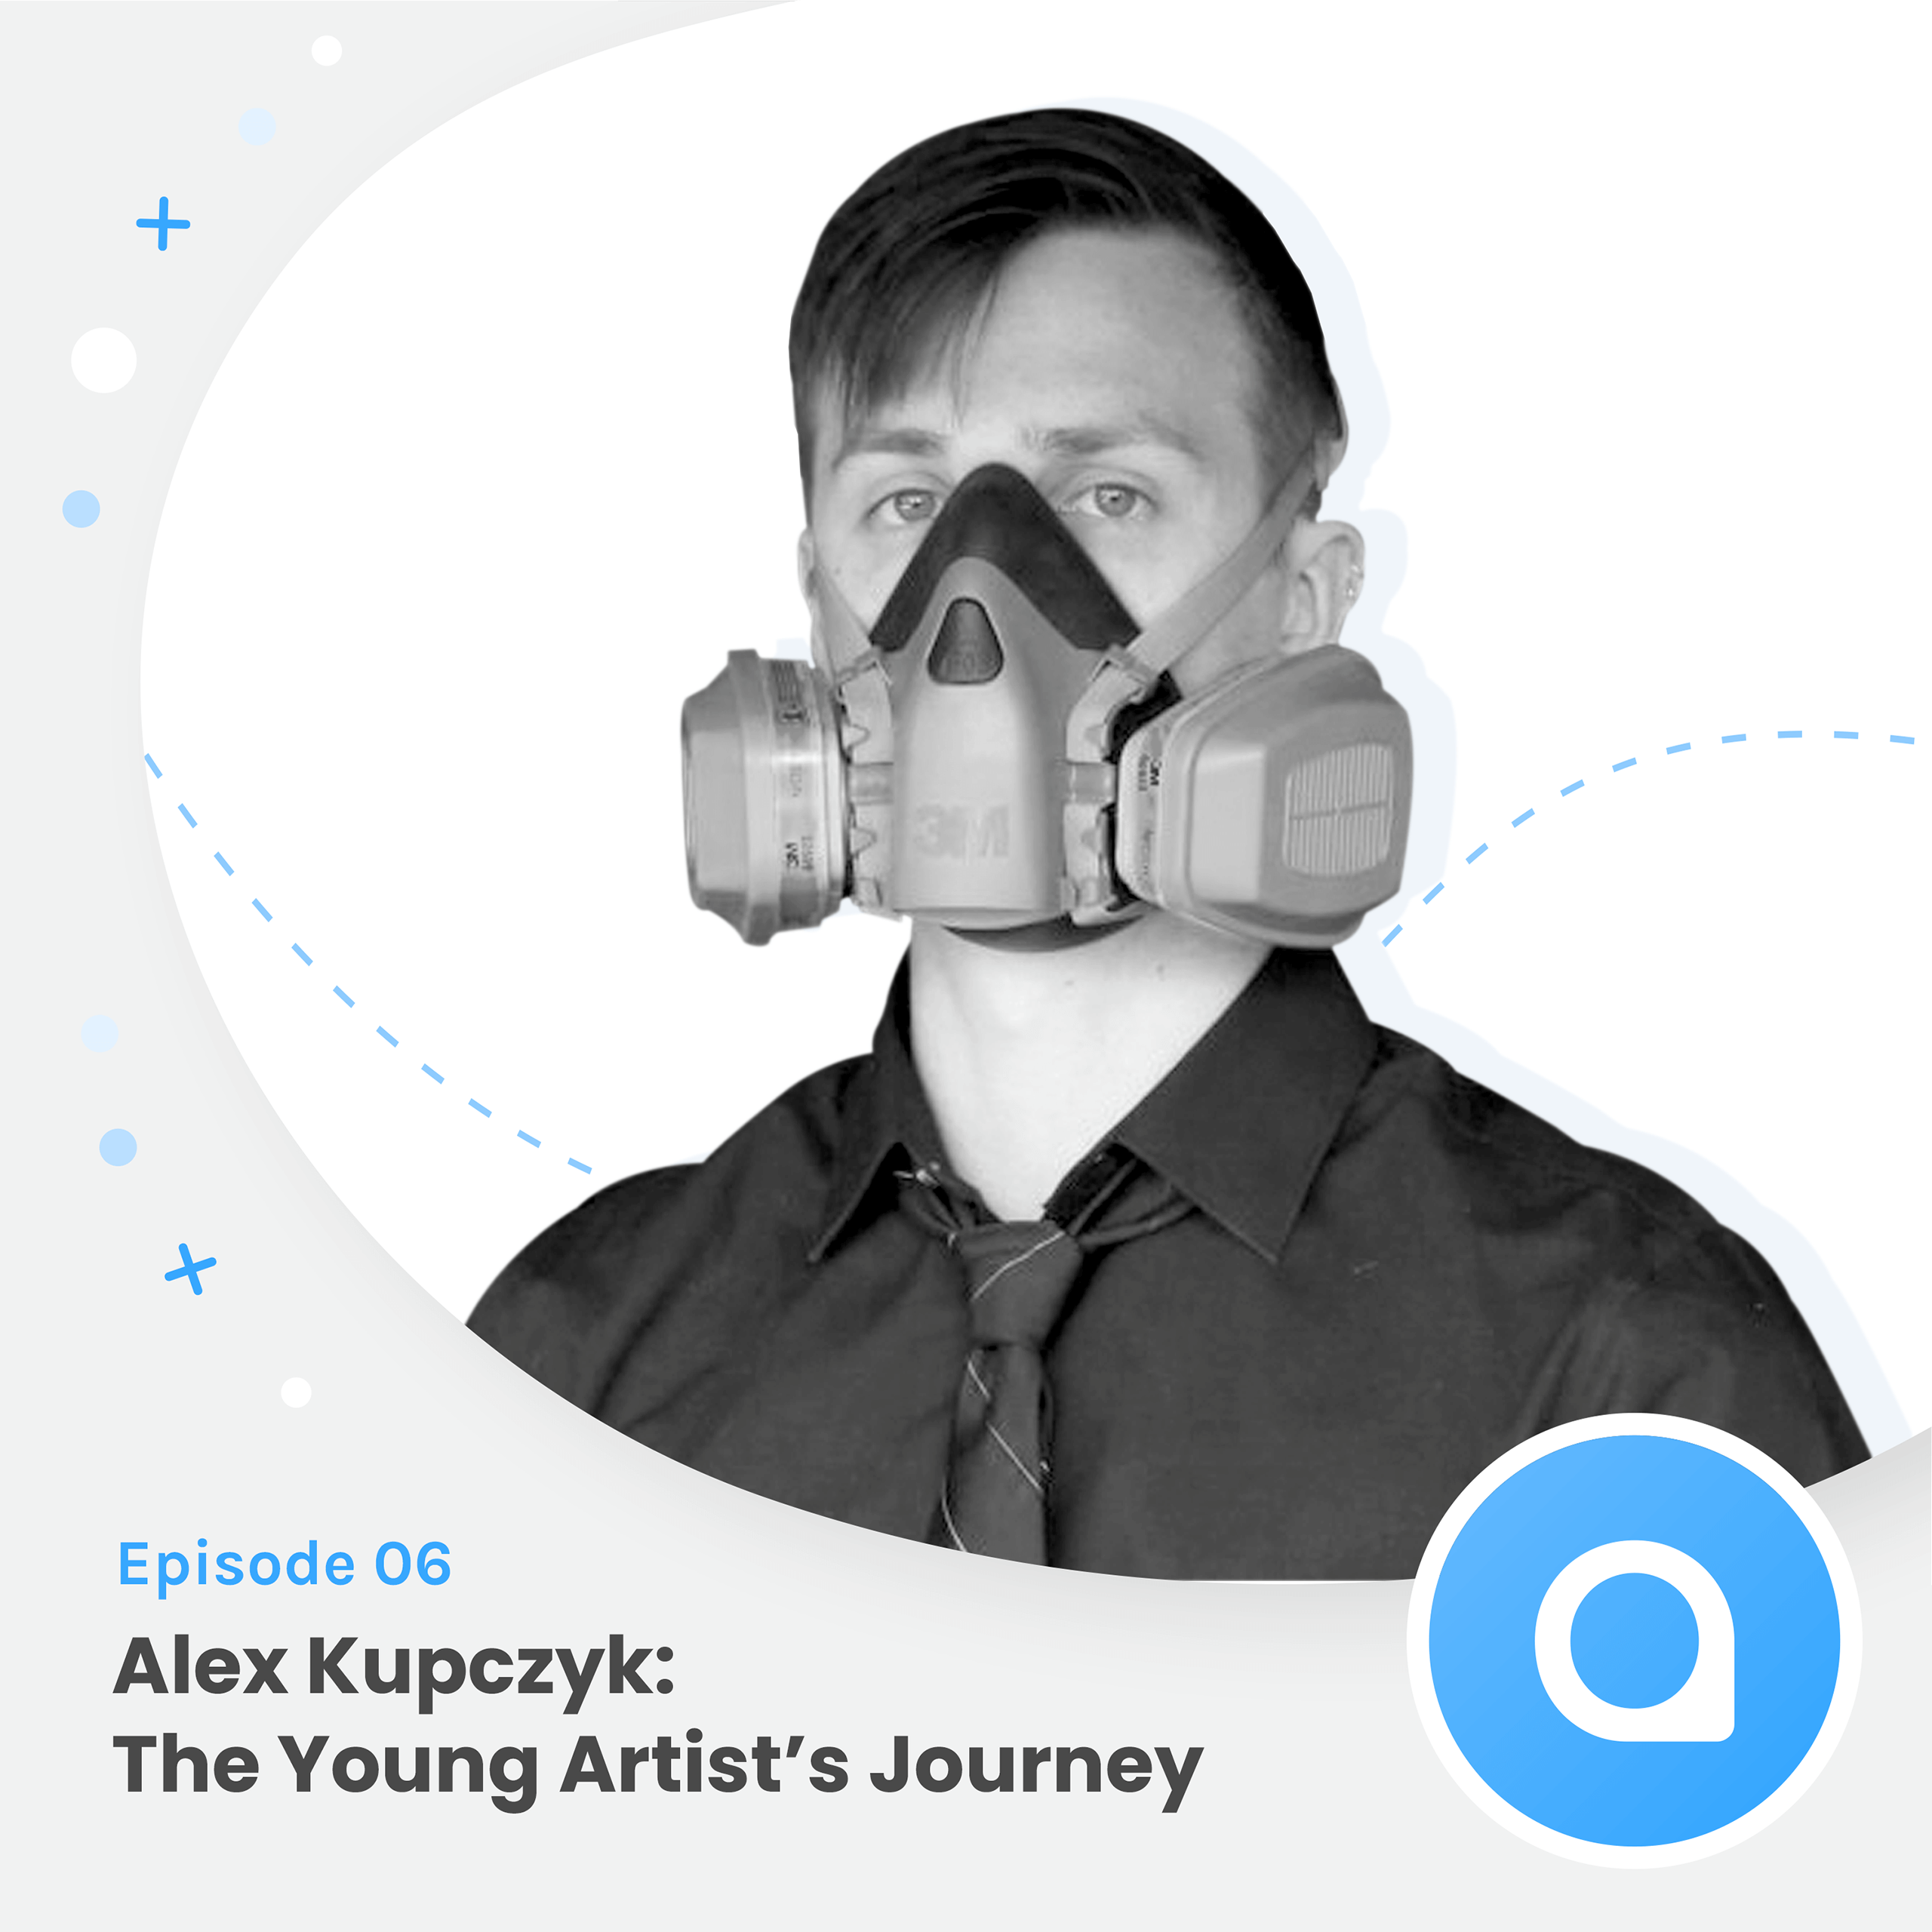 Alex Kupczyk: The Young Artist's Journey